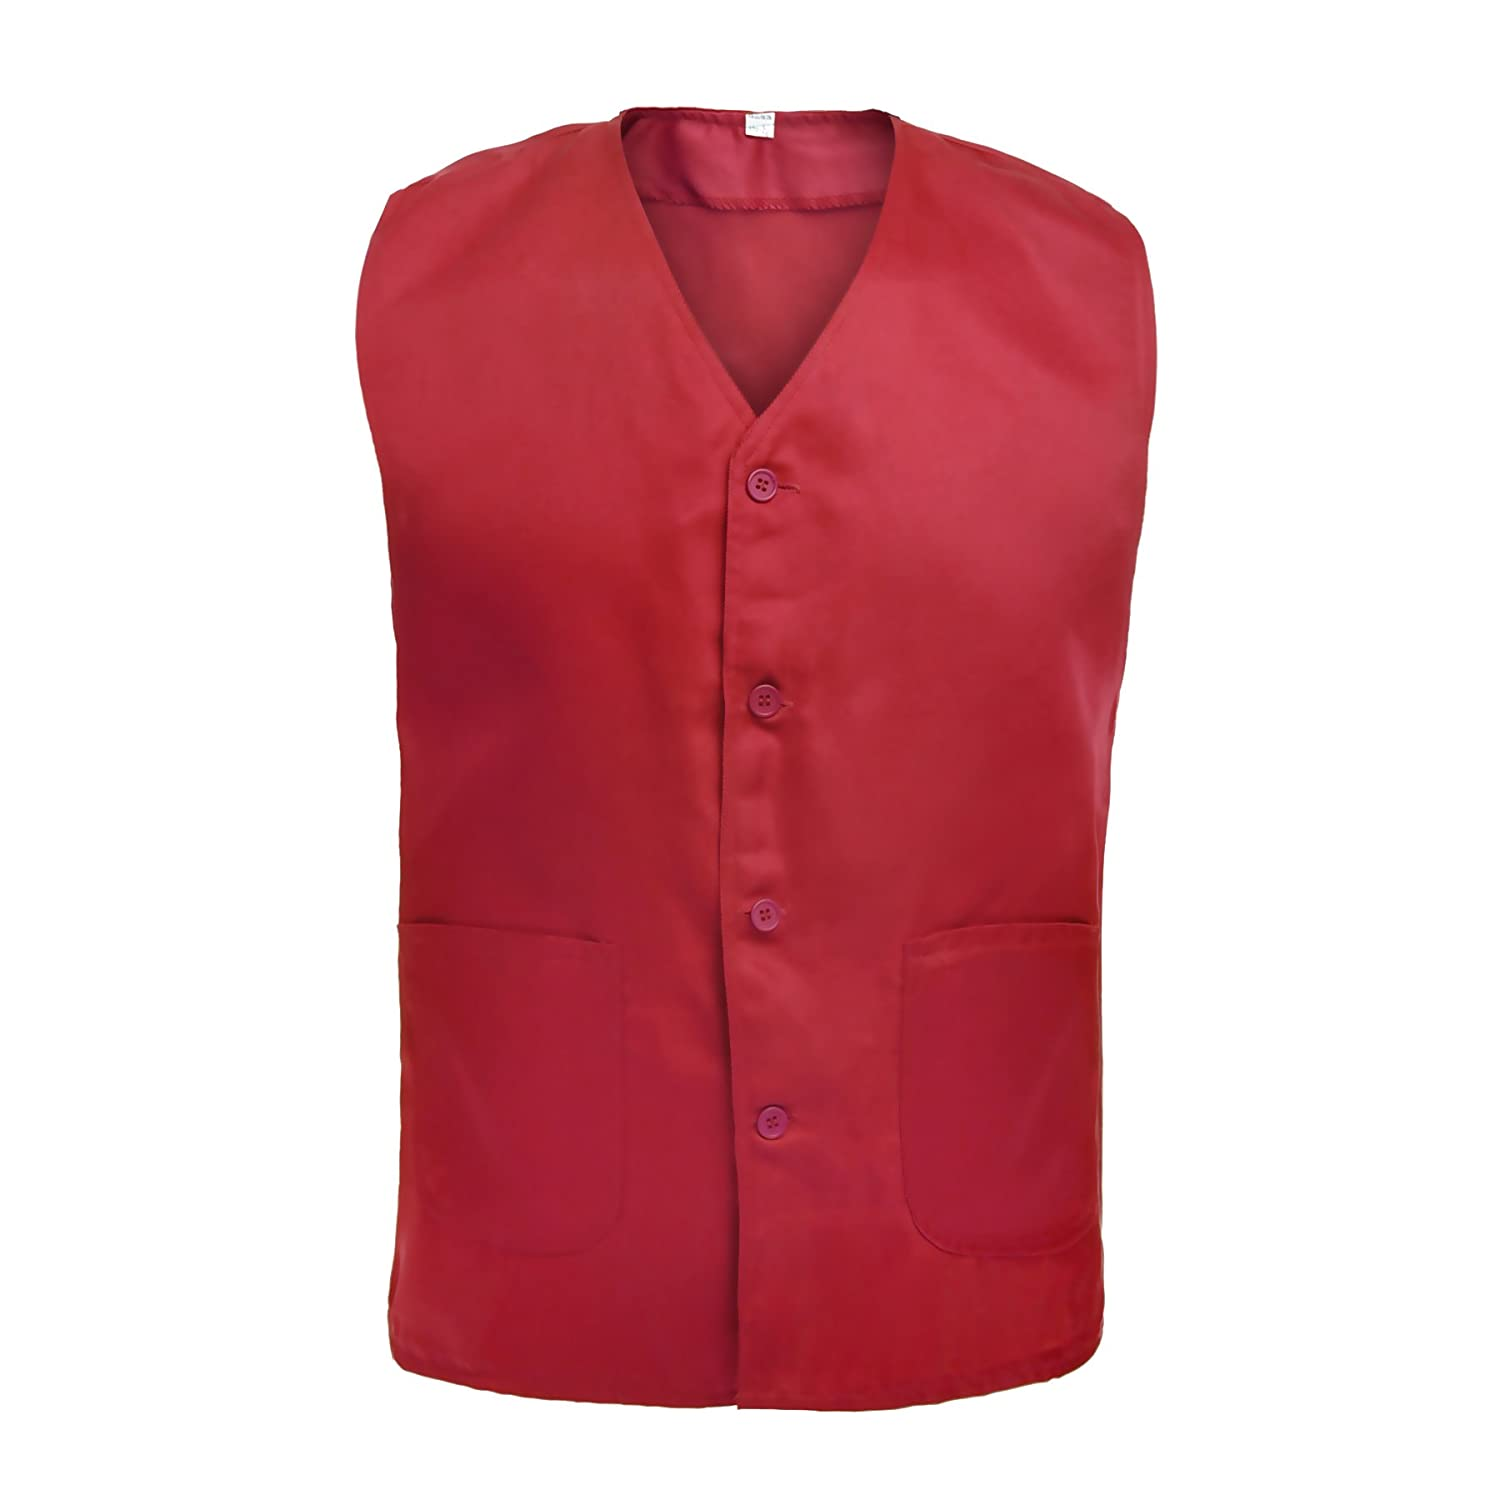 TopTie Vest for Supermarket Clerk Work Uniform Vests with Pockets & Front Button VESX-DK60016